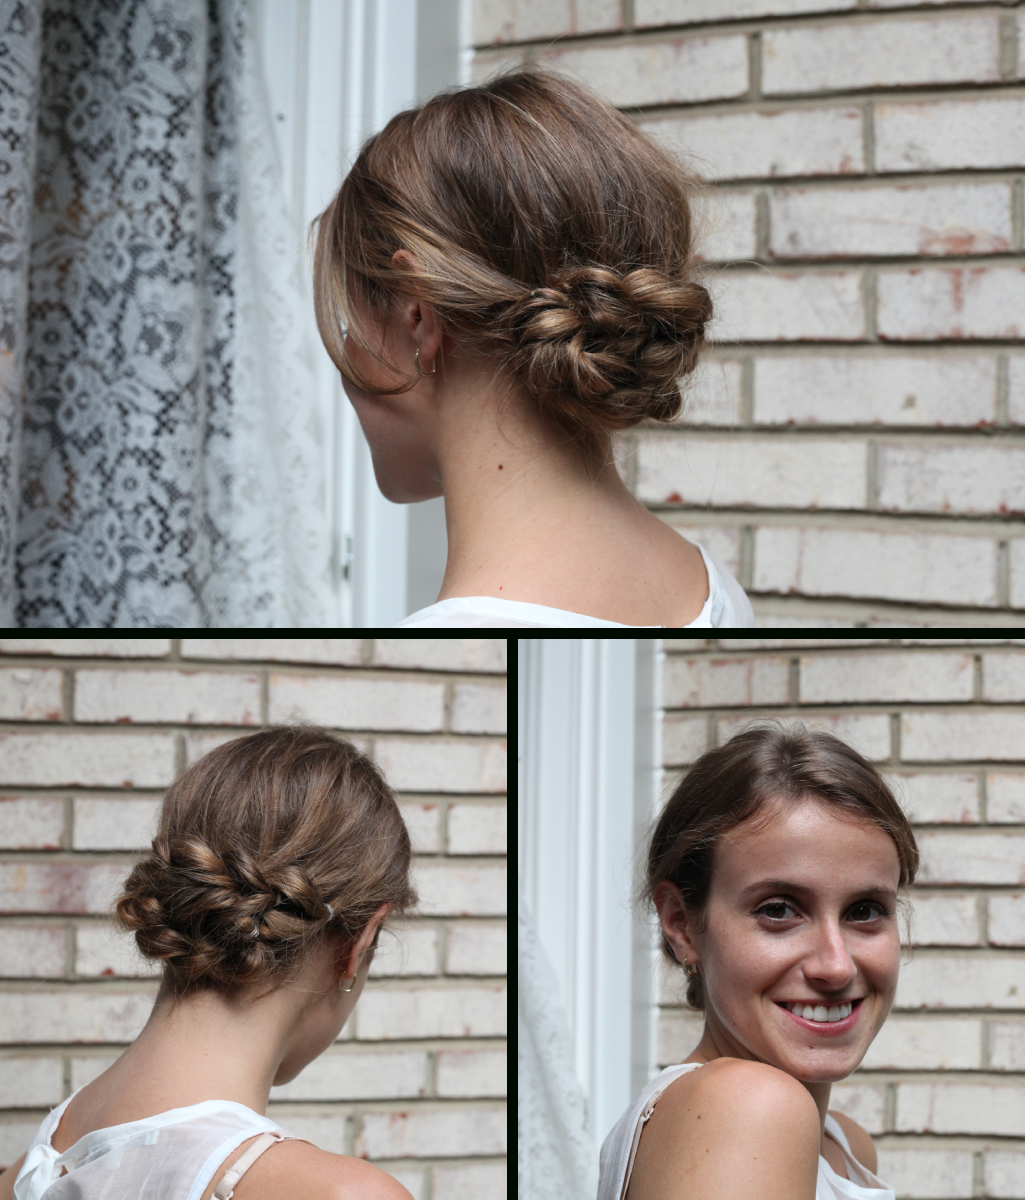 10 Quick And Easy Hairstyles For Updo Newbies – Verily Throughout Well Liked Braid Tied Updo Hairstyles (View 17 of 20)